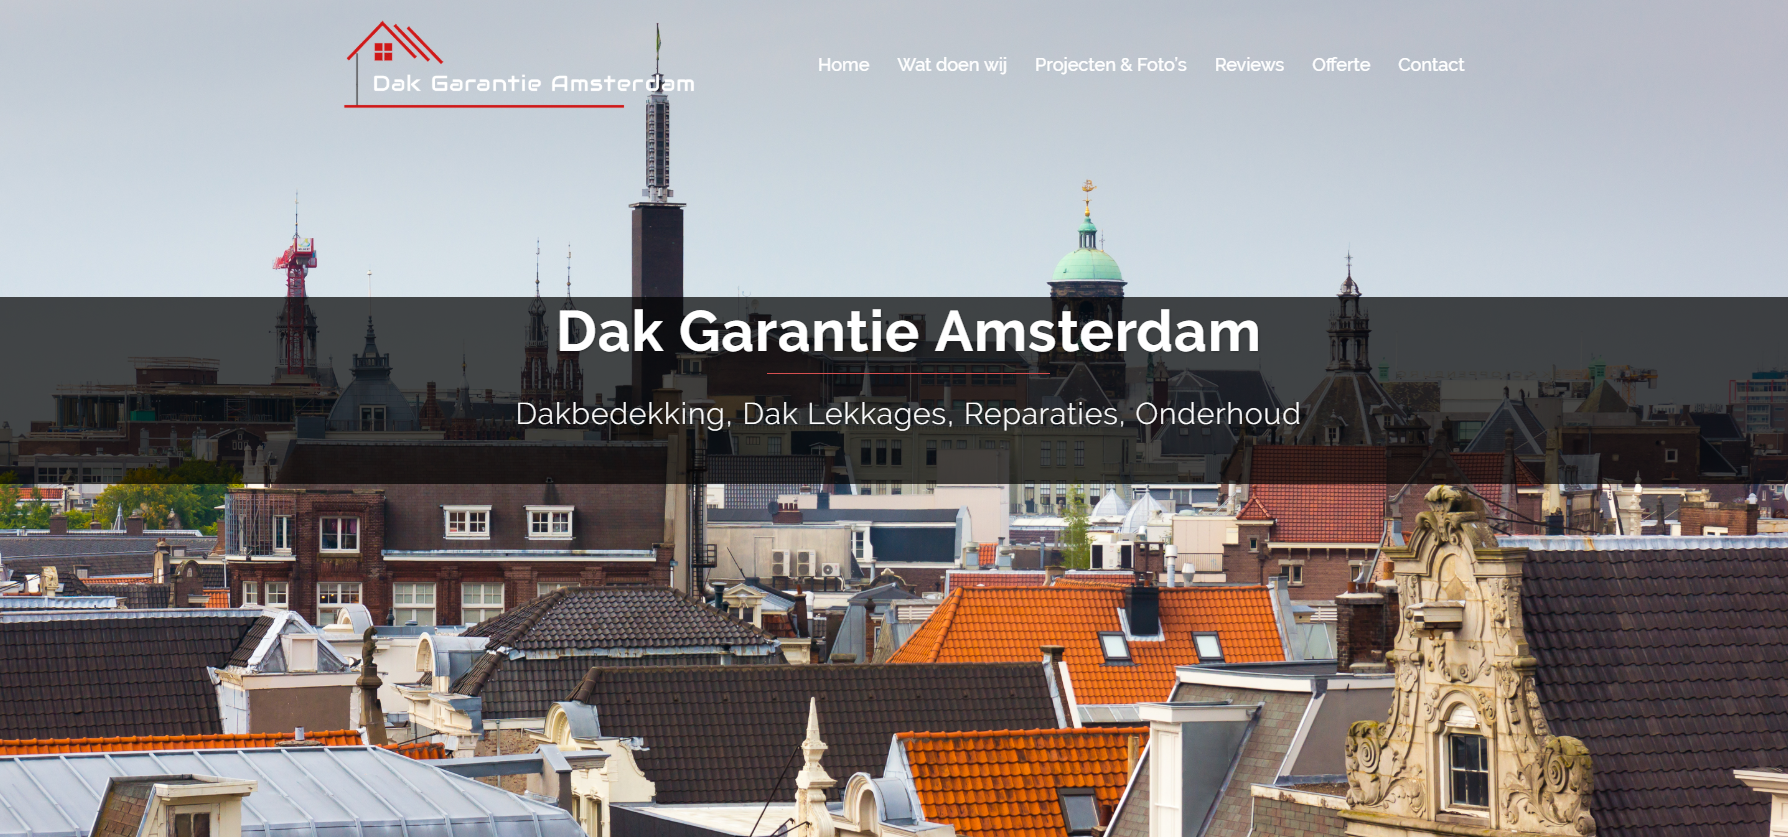 Dak Garantie Amsterdam by eConcepts Europe